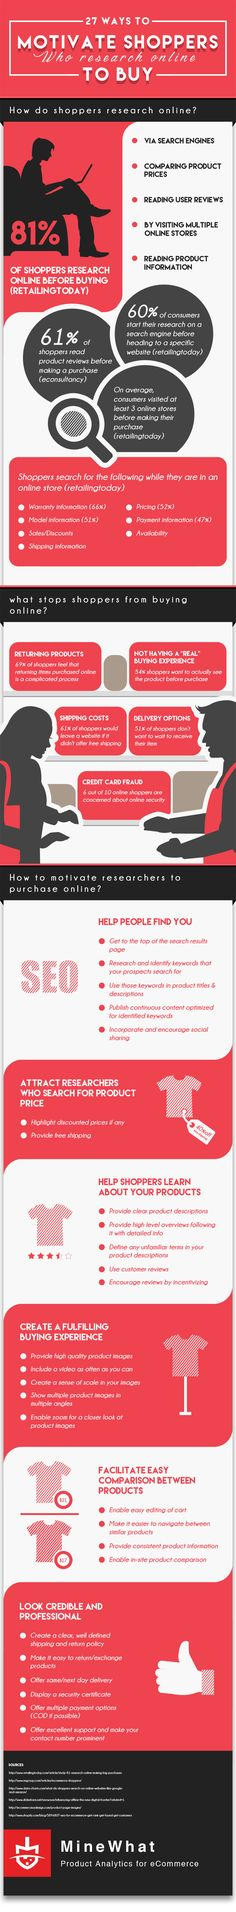 Infographic: 27 Ways To Motivate Shoppers Who Research Online To Buy: 81% of shoppers research online before making a purchase. Find out what stops them from buying online and what you can do to motivate them to buy. #digitalmarketing #marketing #seo #internetmarketing #digitalmarketingtrends